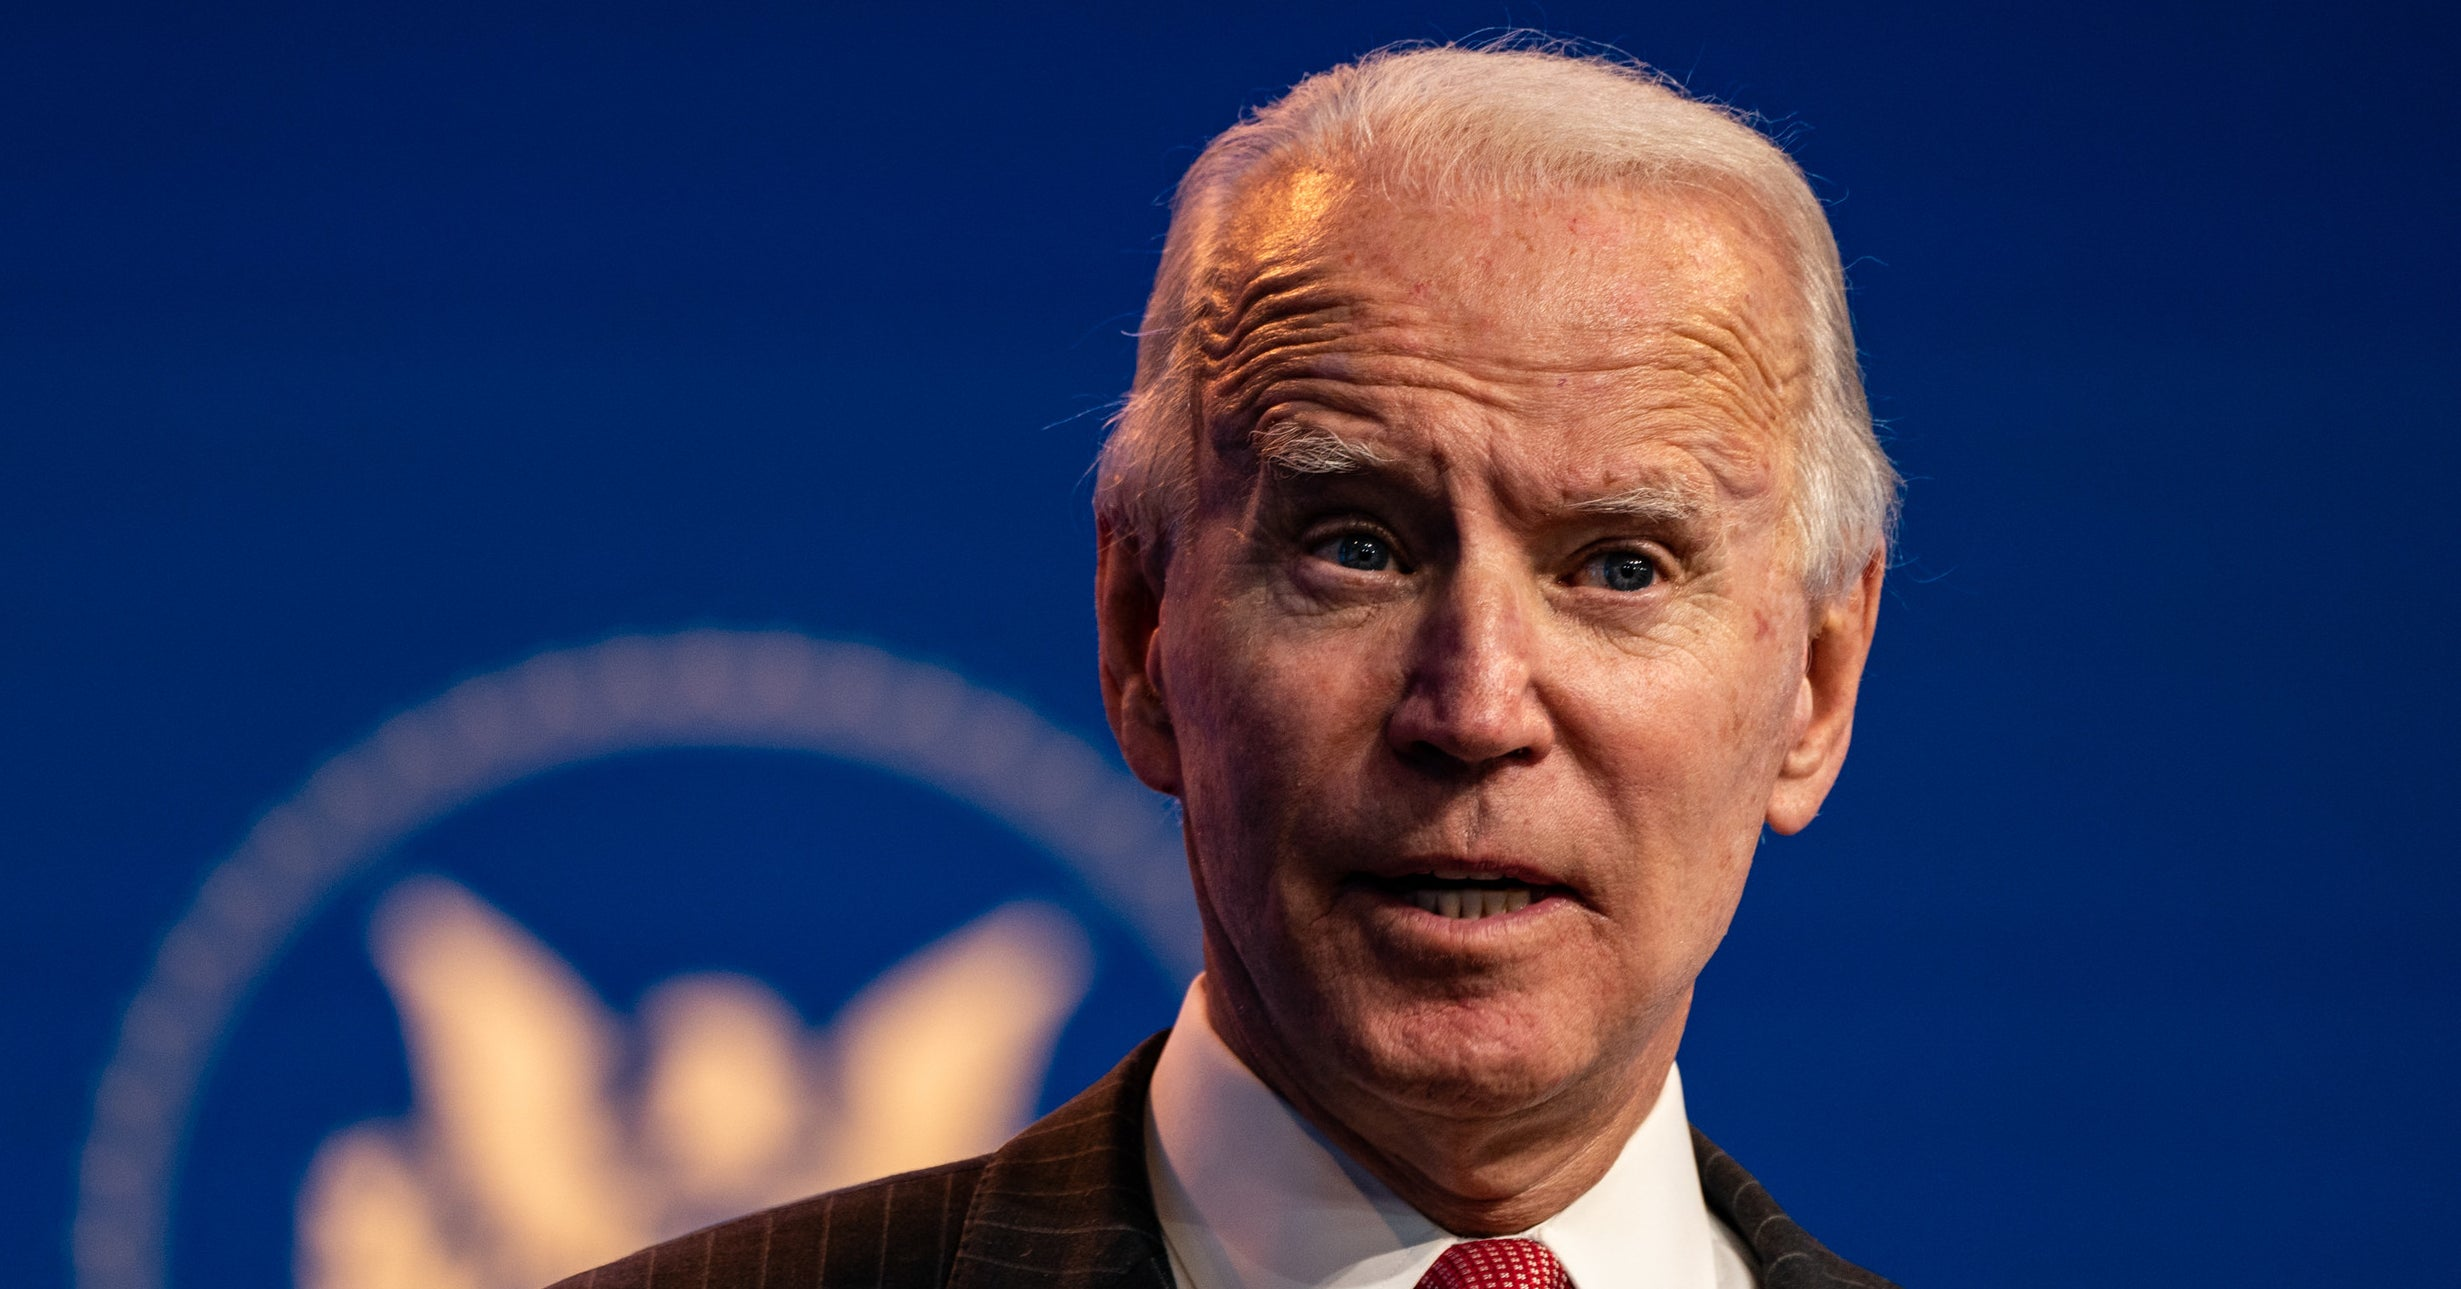 Joe Biden's Presidency Could Make Student Debt Cancellation A Real Possibility